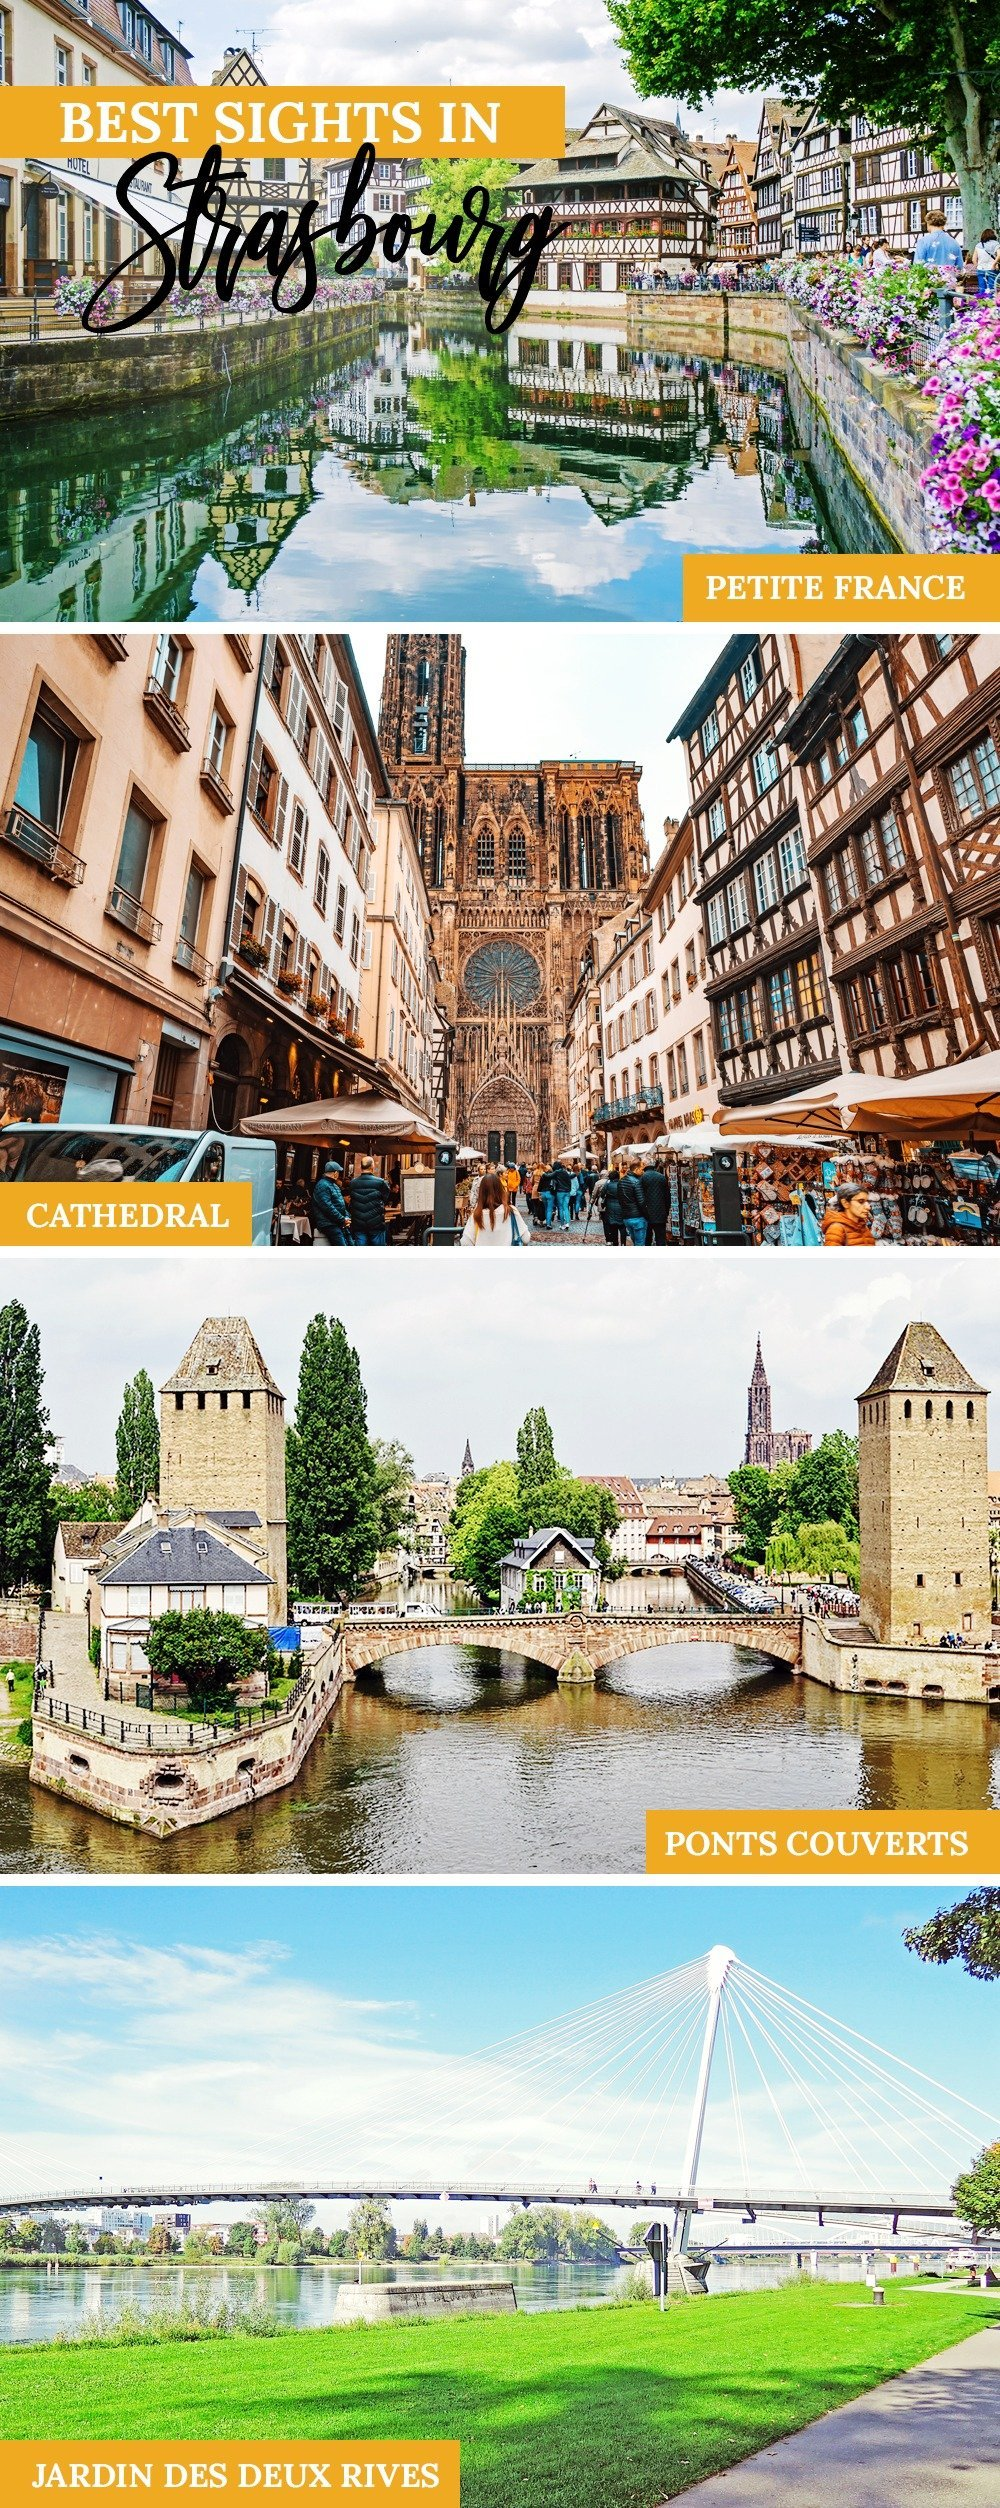 Joie de vivre meets gemütlich in this city with a French soul, German trimmings, and a whole lot of charm! If you love wine, storybook houses, and great food, you'll love Strasbourg. Here's your itinerary and travel guide to Strasbourg!